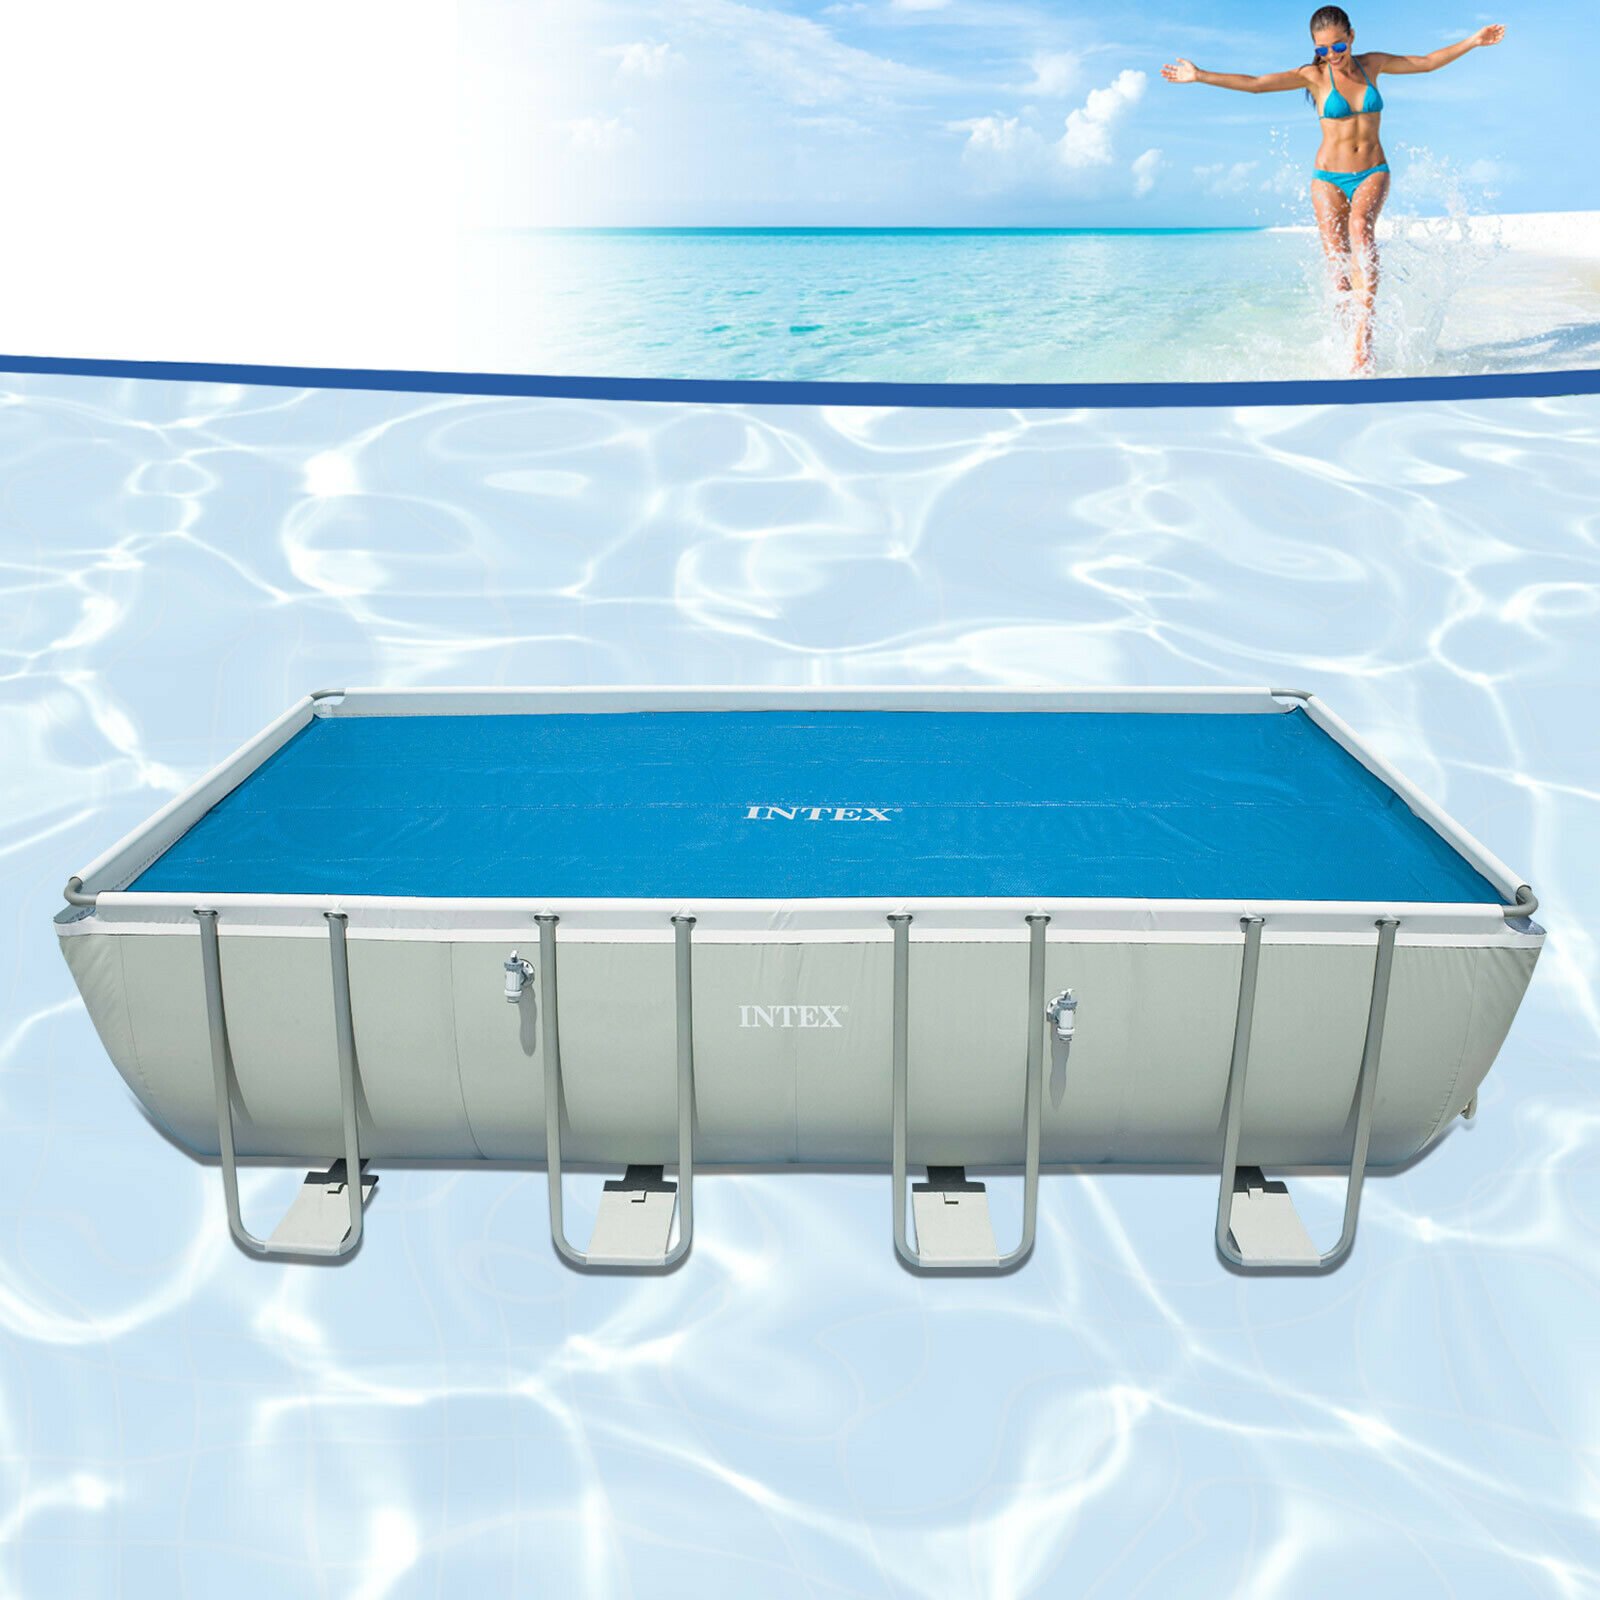 Jilong Poolheizung Intex 29028 Thermische Solarabdeckplane Pool 378x186cm